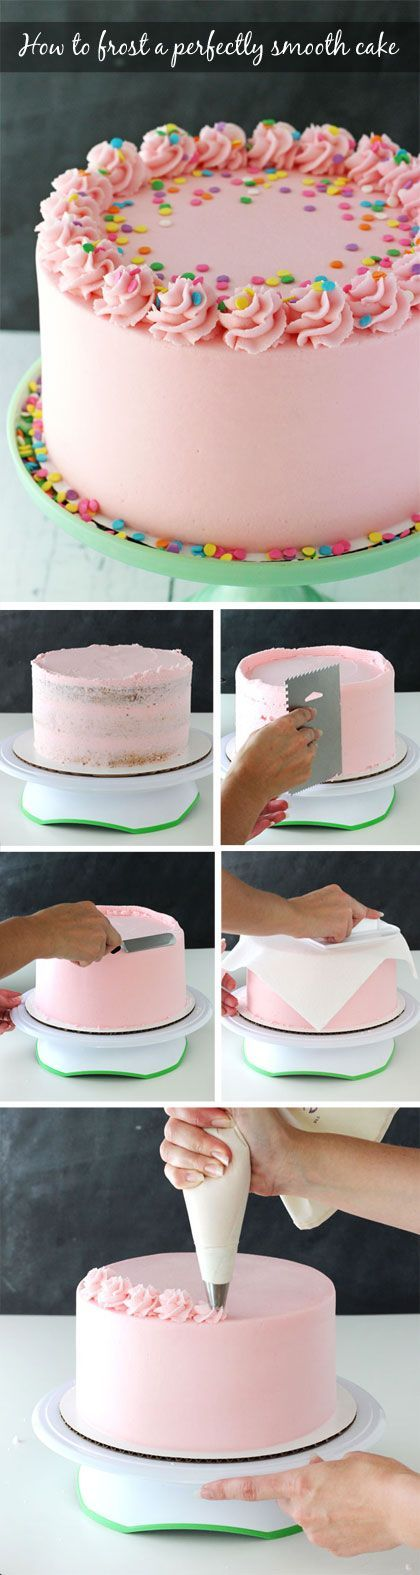 Tutorial for how to frost a perfectly smooth cake with buttercream icing…